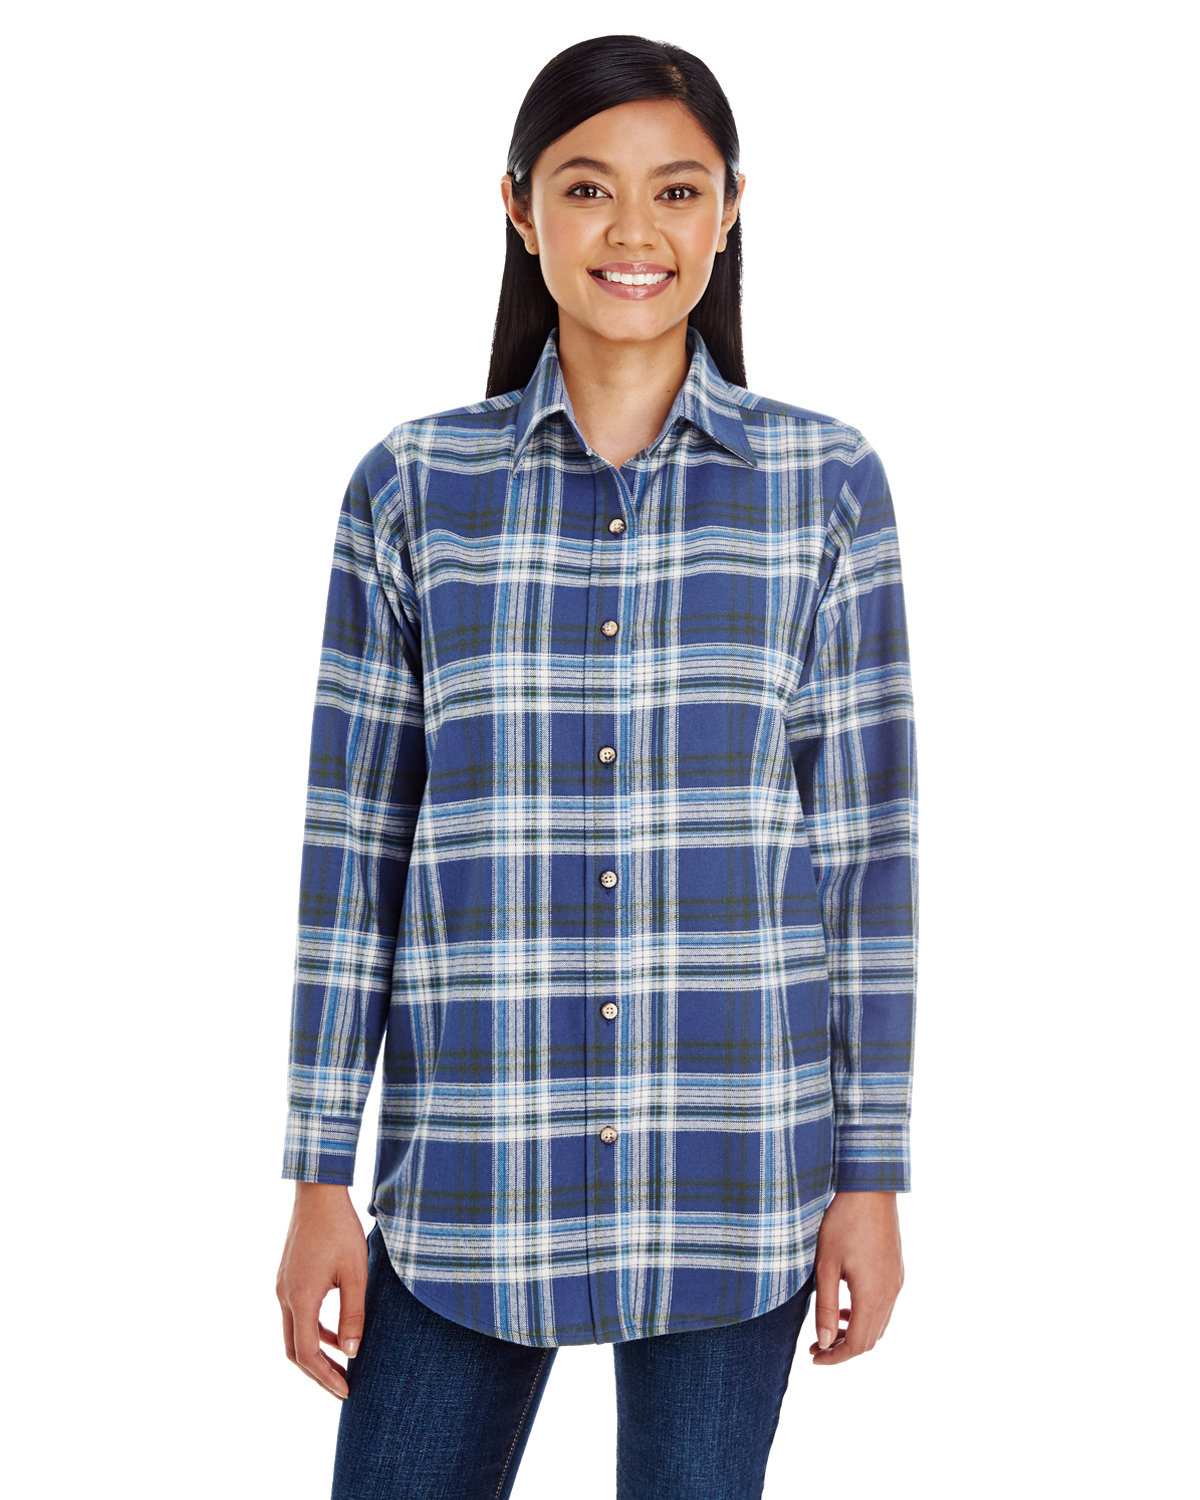 Backpacker Ladies' Yarn-Dyed Flannel Shirt BLUE/ GREEN